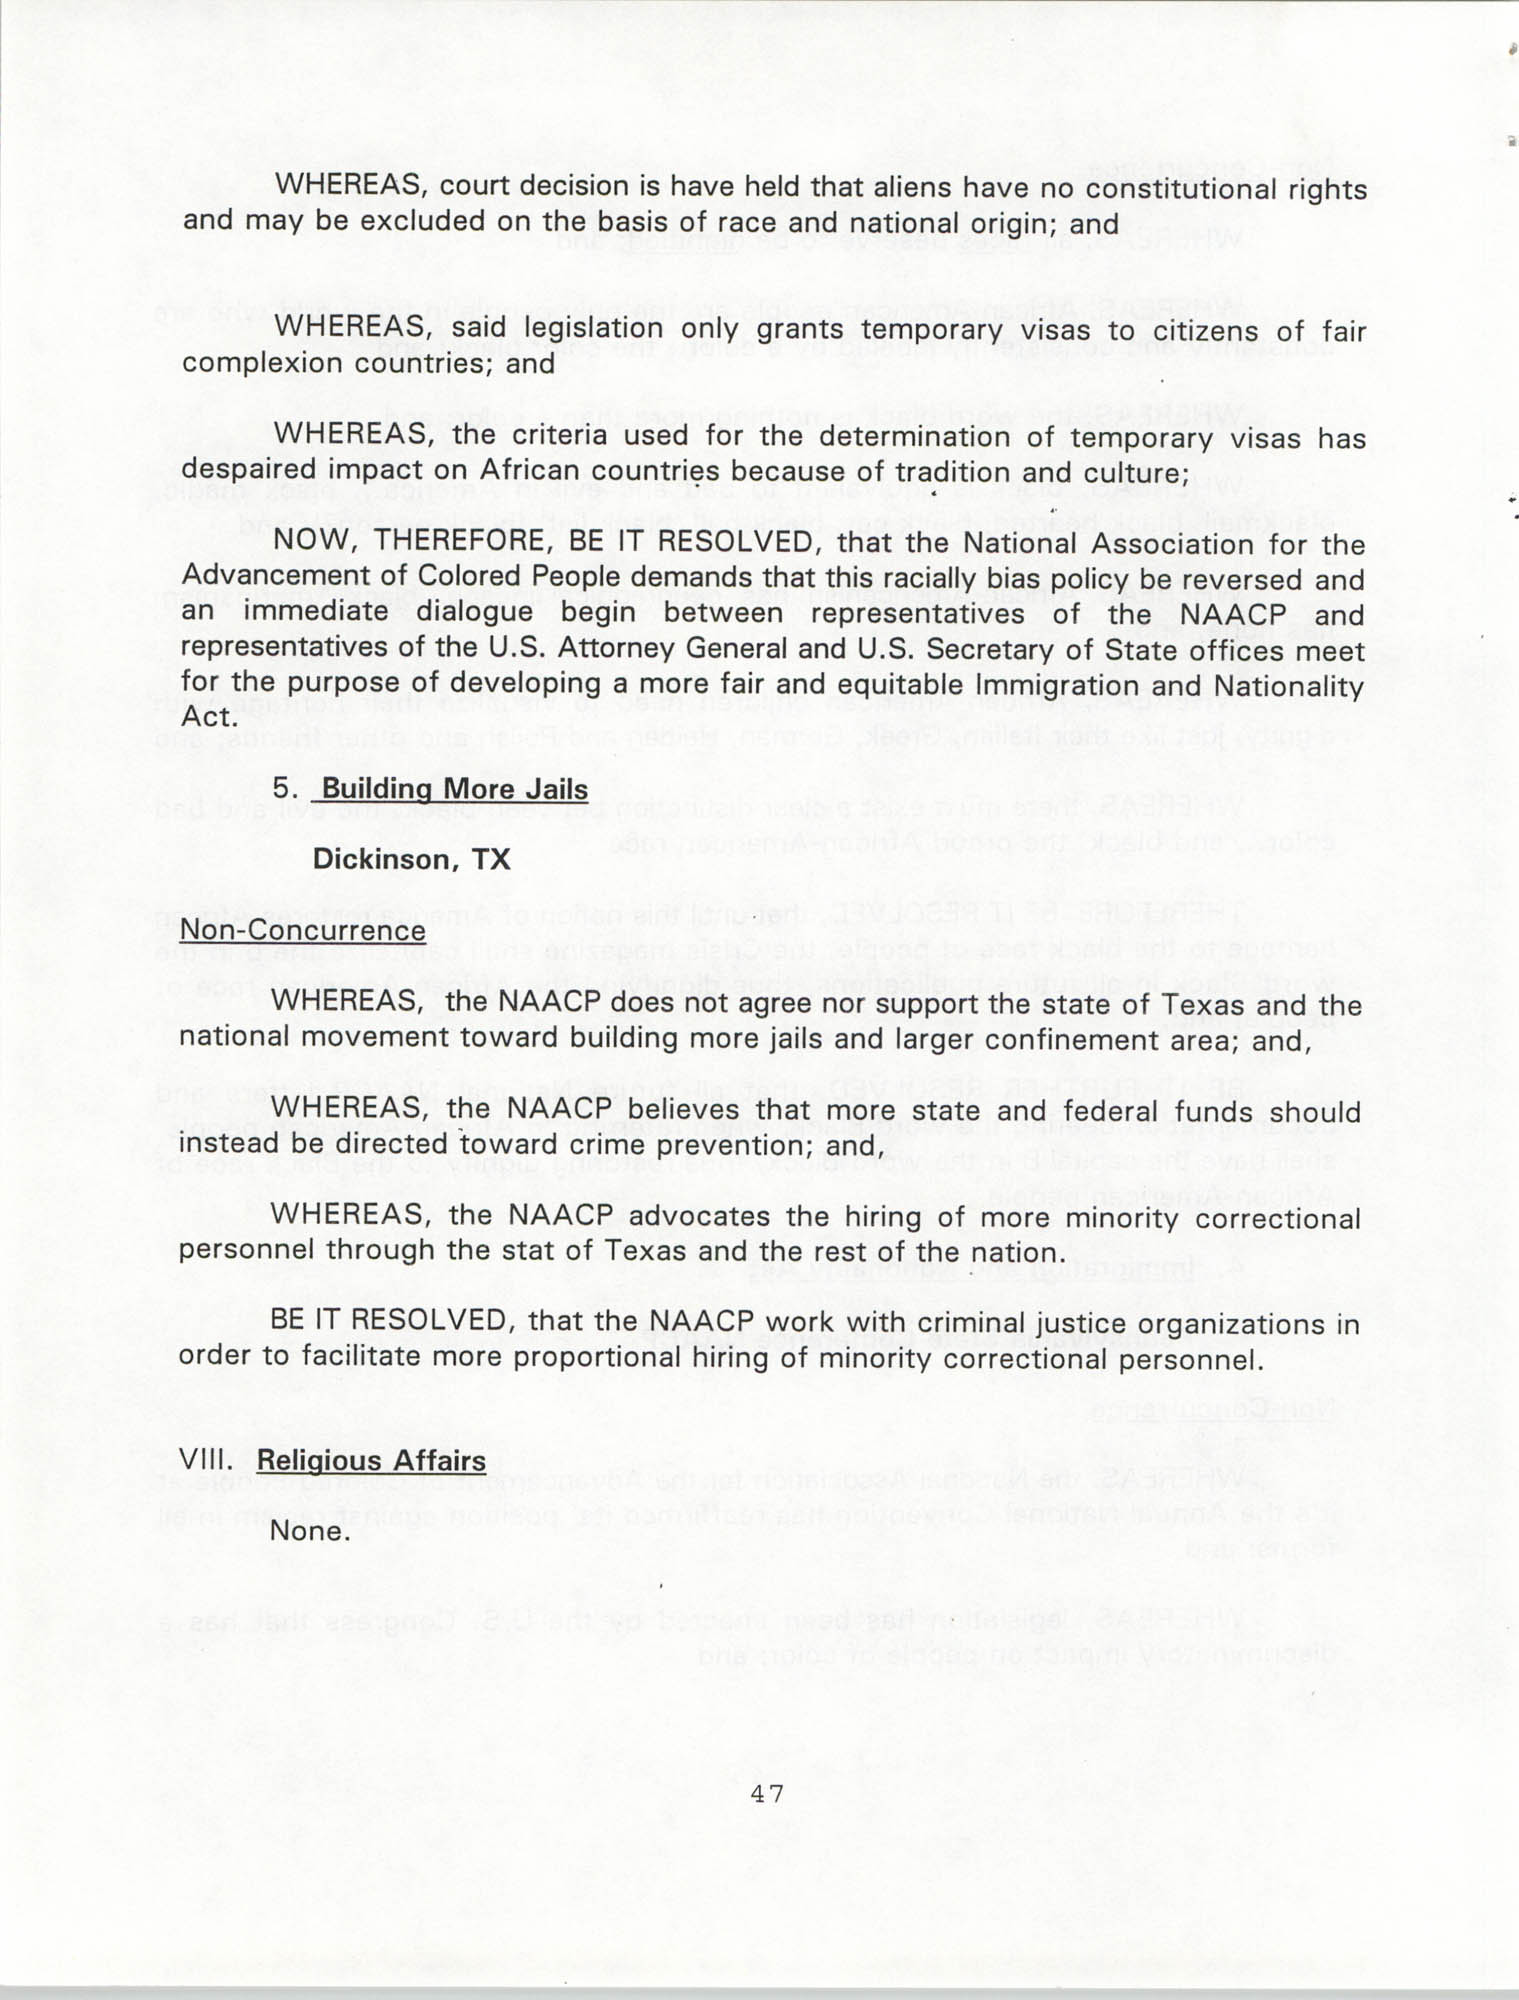 Resolutions Submitted Under Article X, Section 2 of the Constitution of the NAACP, 1994, Page 47